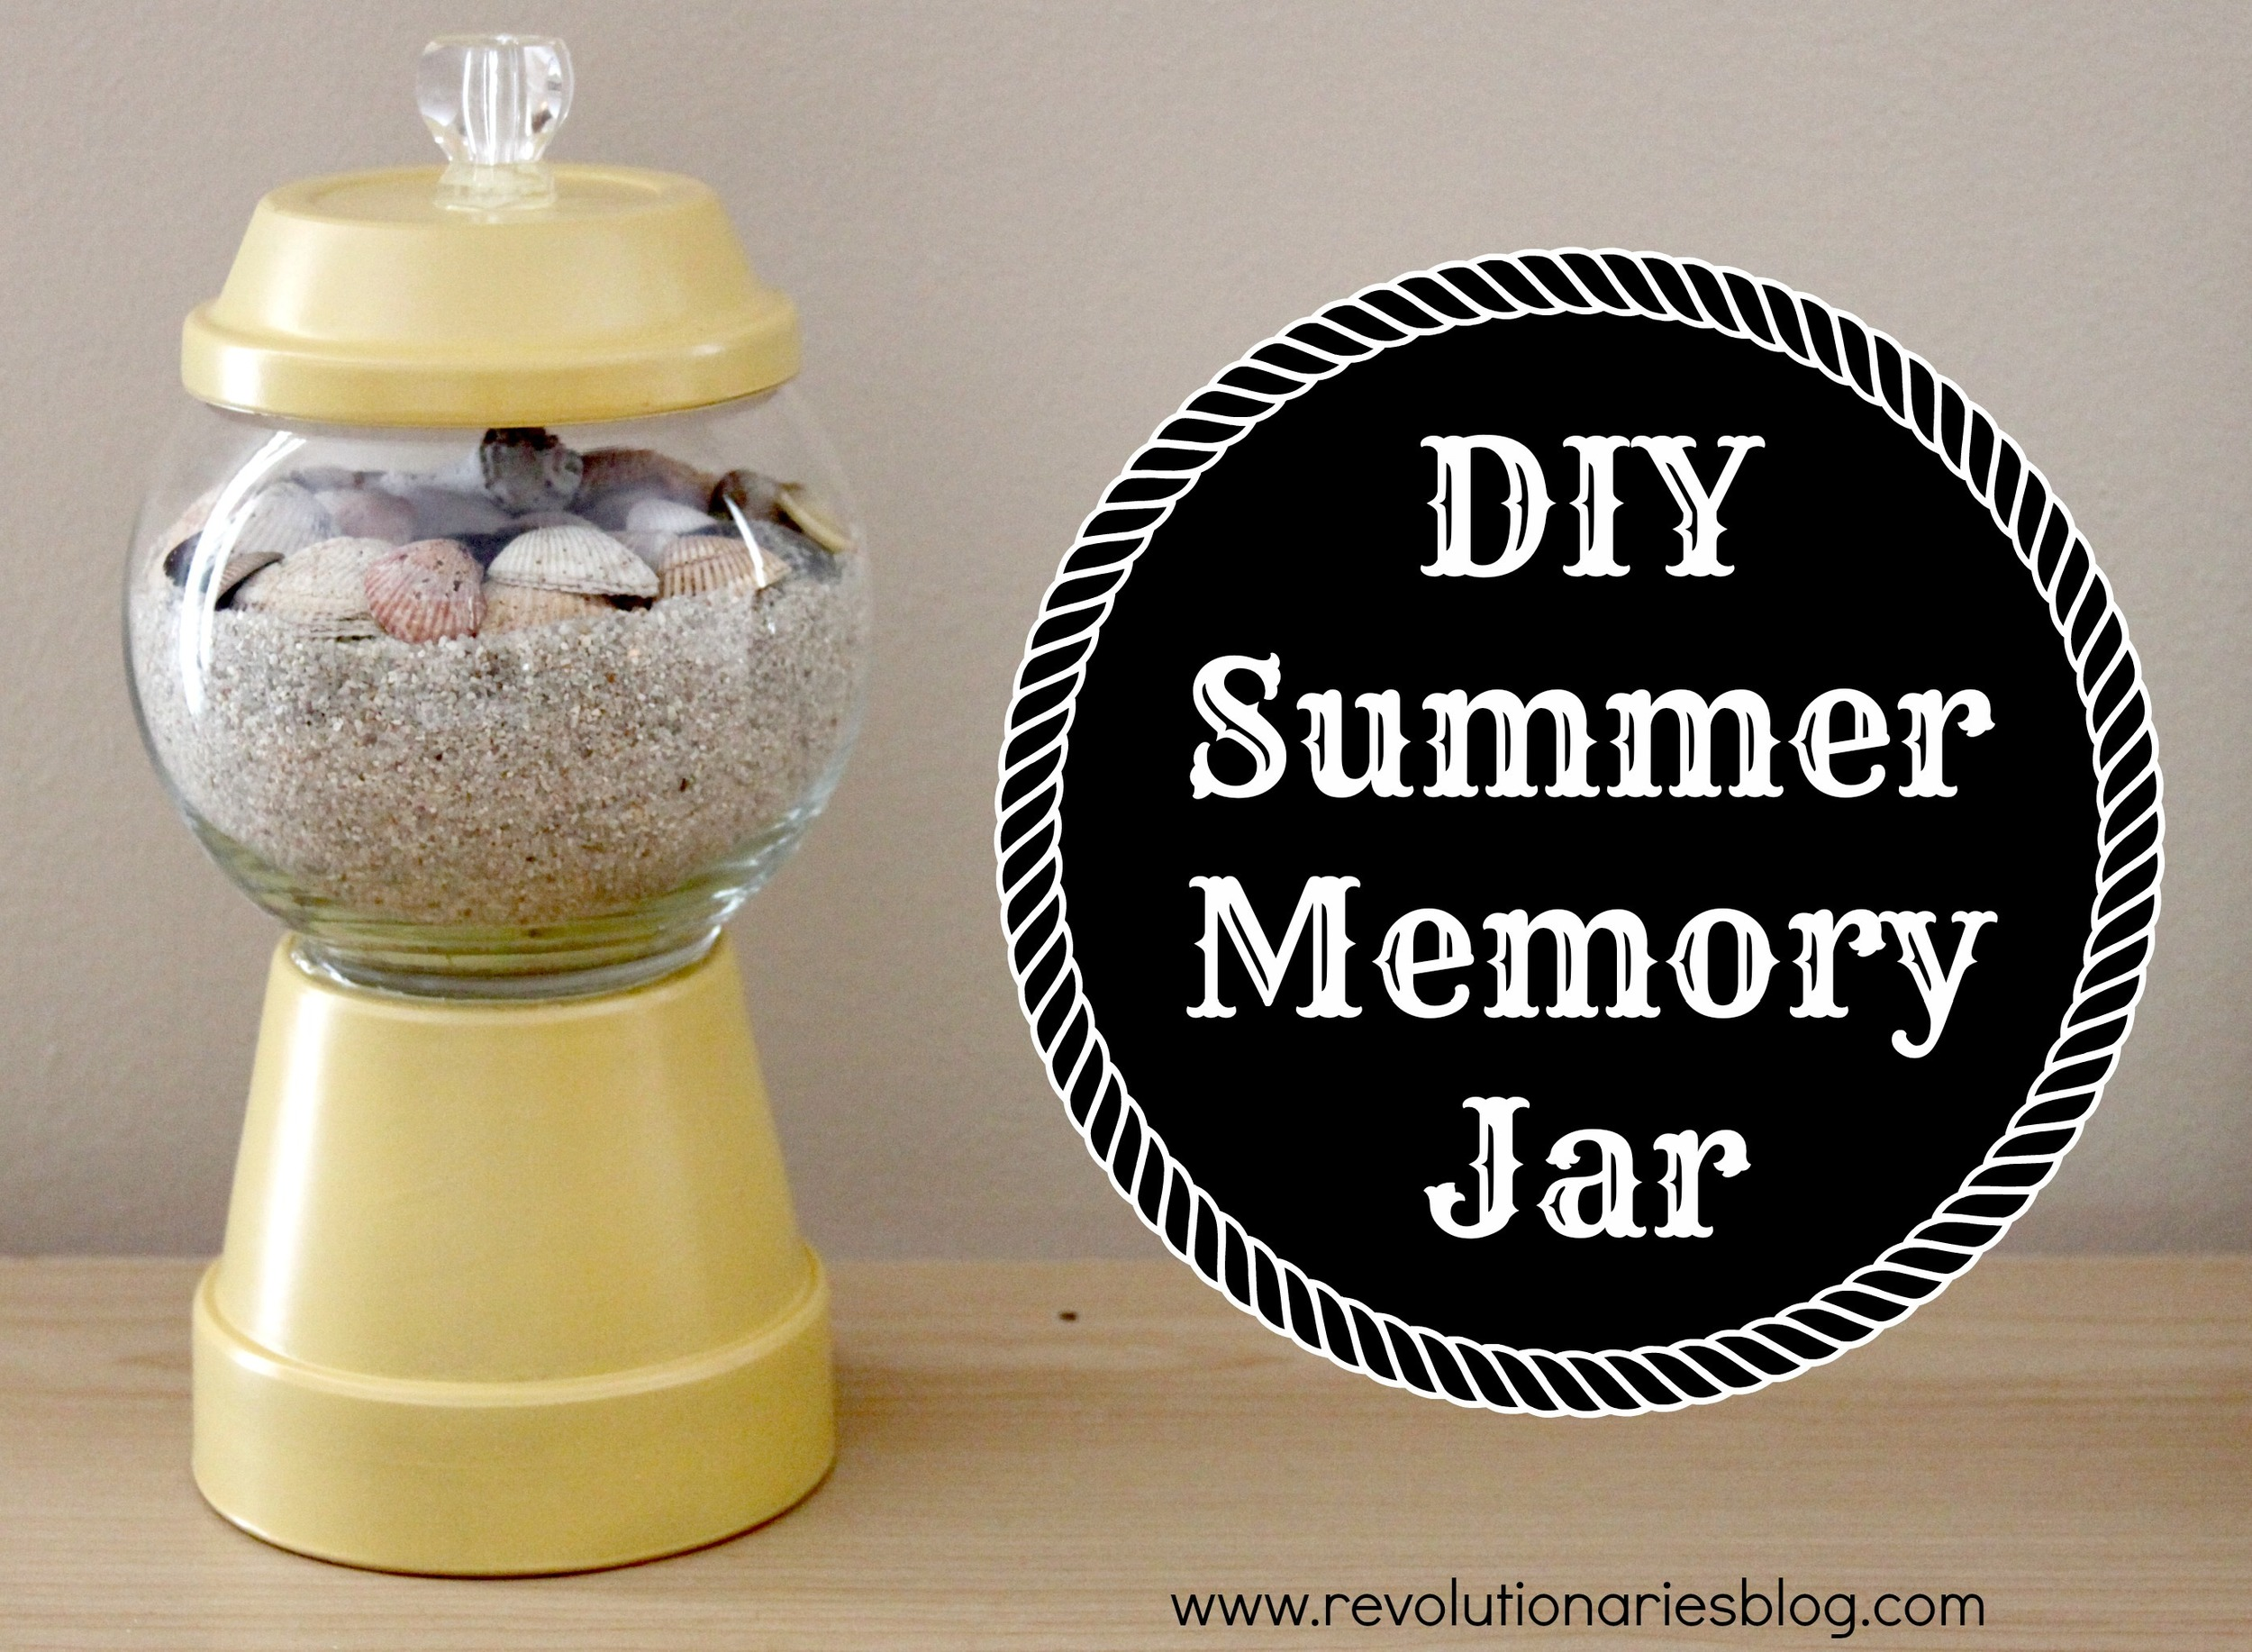 diy-summer-memory-jar.jpg